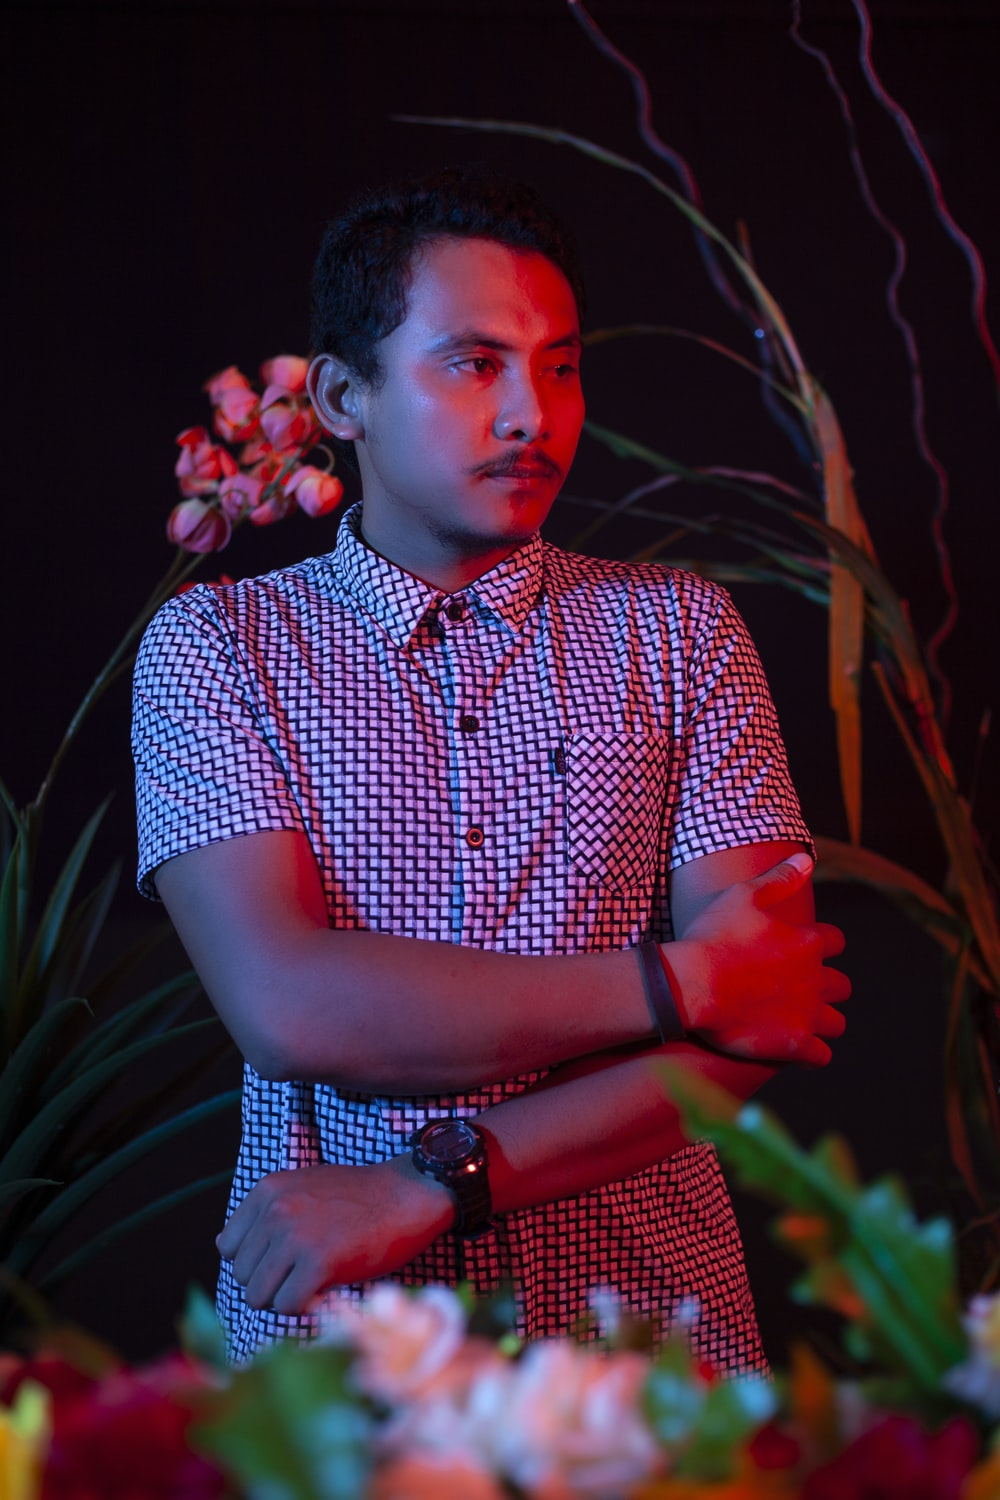 man in blue and white checkered button up shirt standing near red flowers